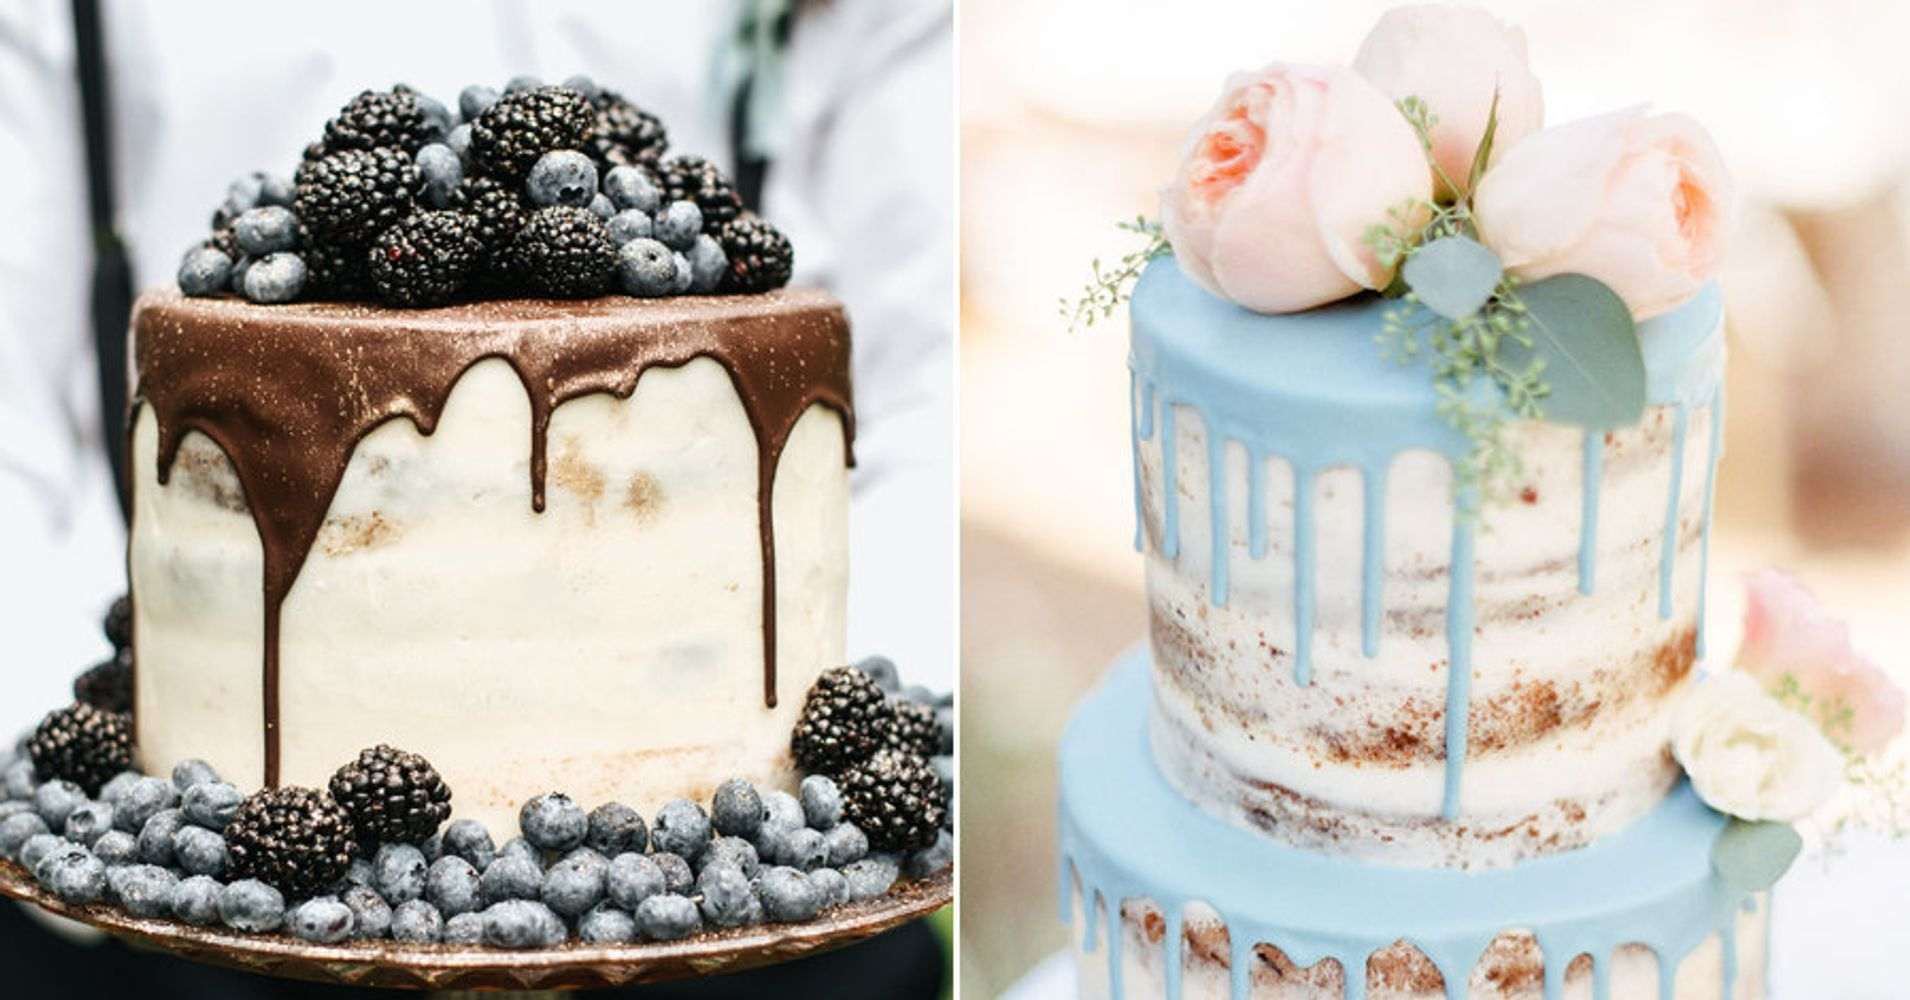 14 Drip Wedding Cakes That Are Overflowing With Sweetness | HuffPost